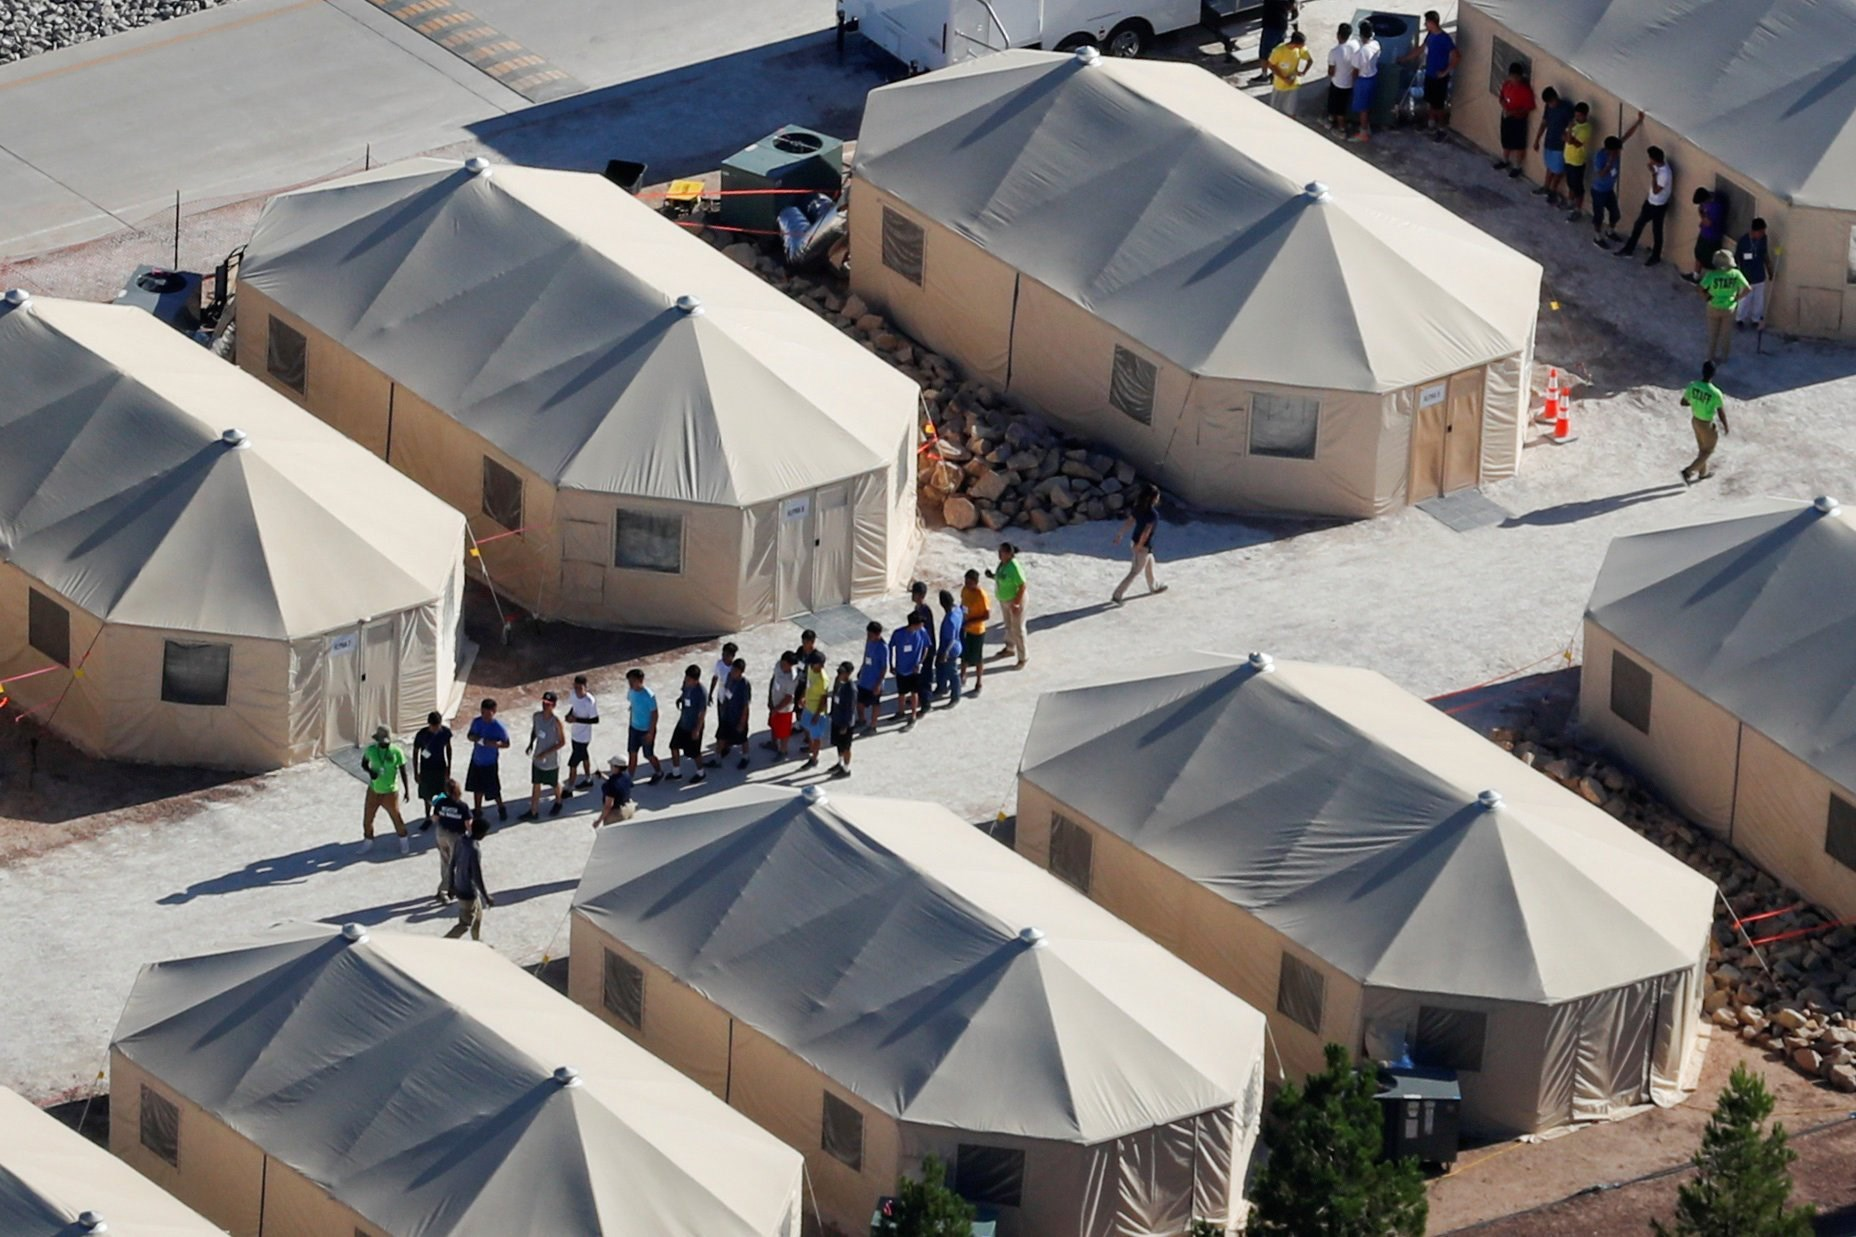 Children Walking in a line at a Tent Encampment in Tornillo, Texas, on 19 June 2018, (Mike Blake, Reuters,